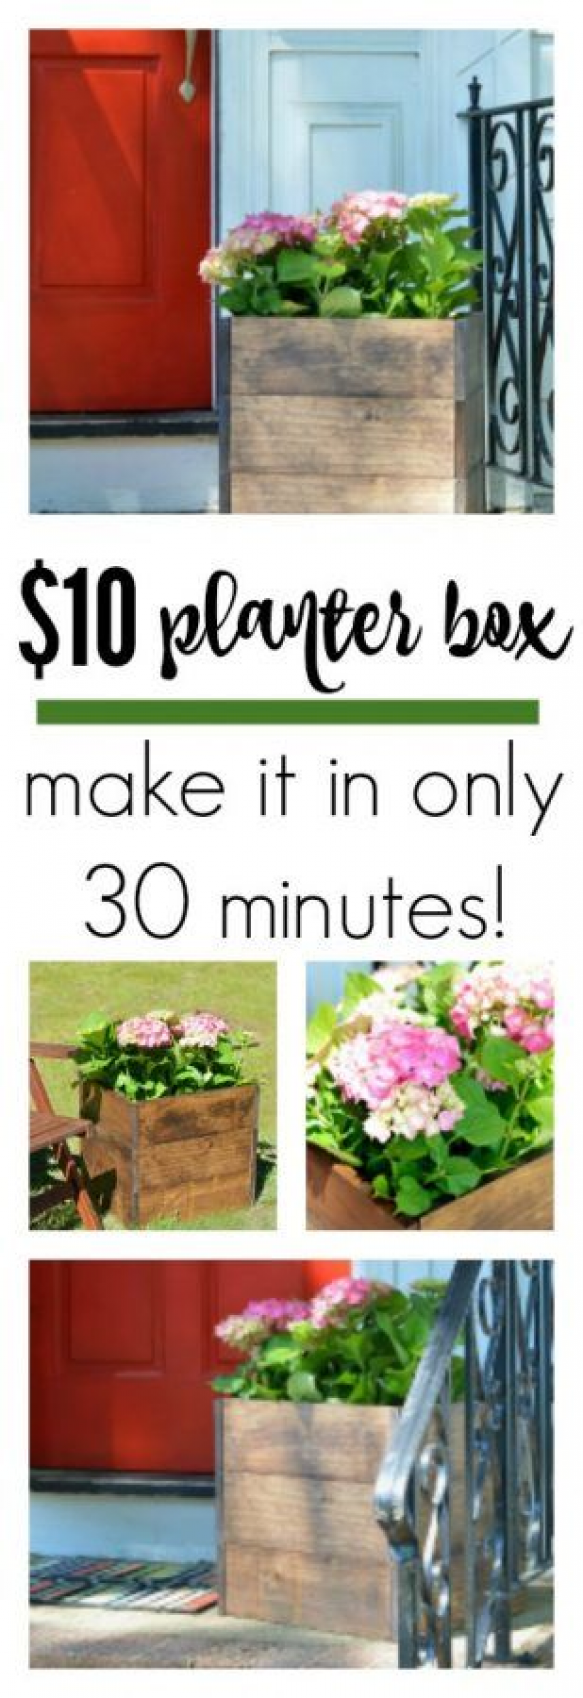 DIY Wood Planter Box - Jenna Kate at Home